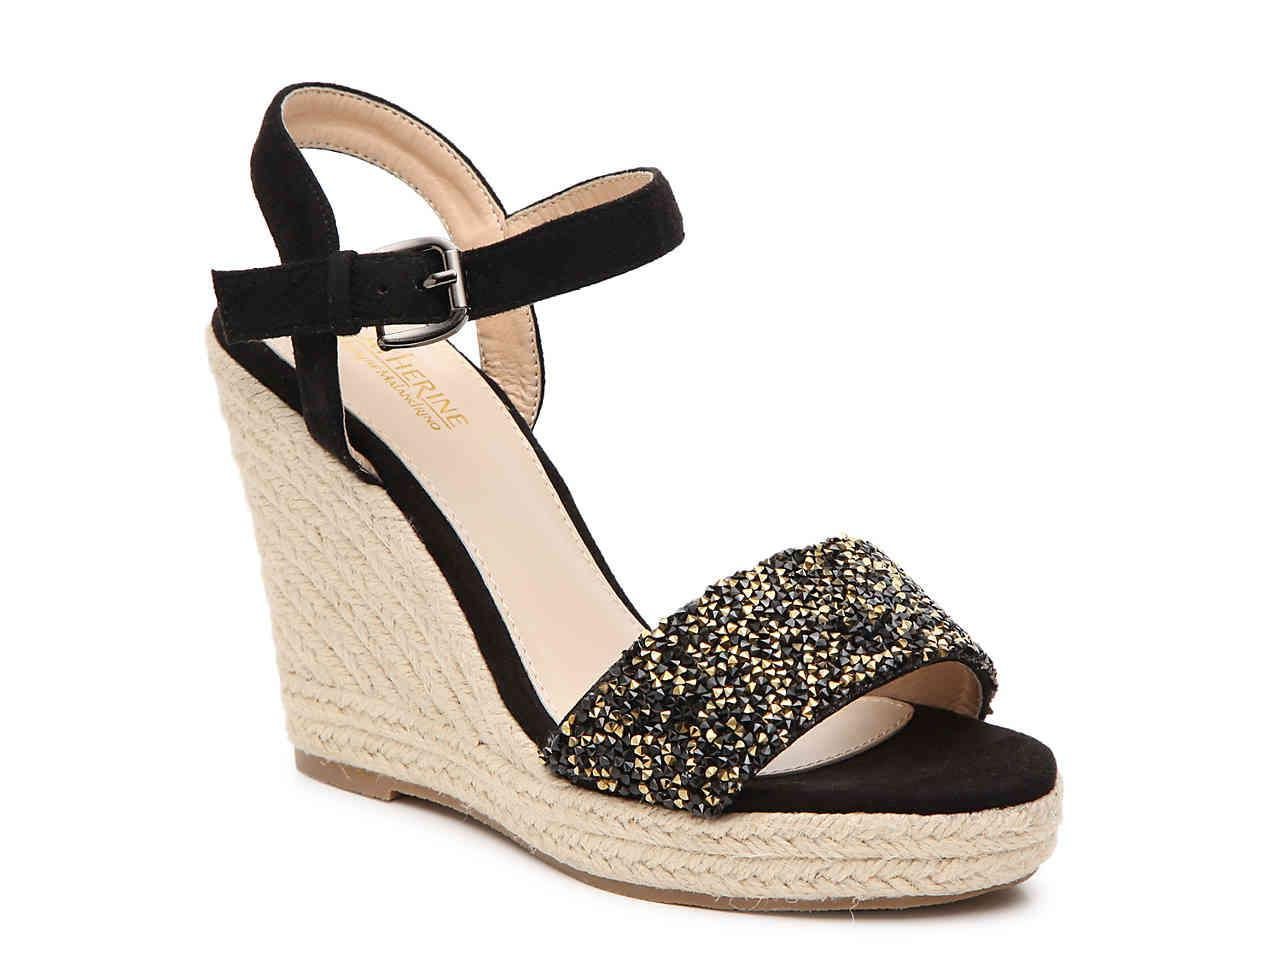 8440304bb18 Lyst - Catherine Malandrino Grison Espadrille Wedge Sandal in Metallic